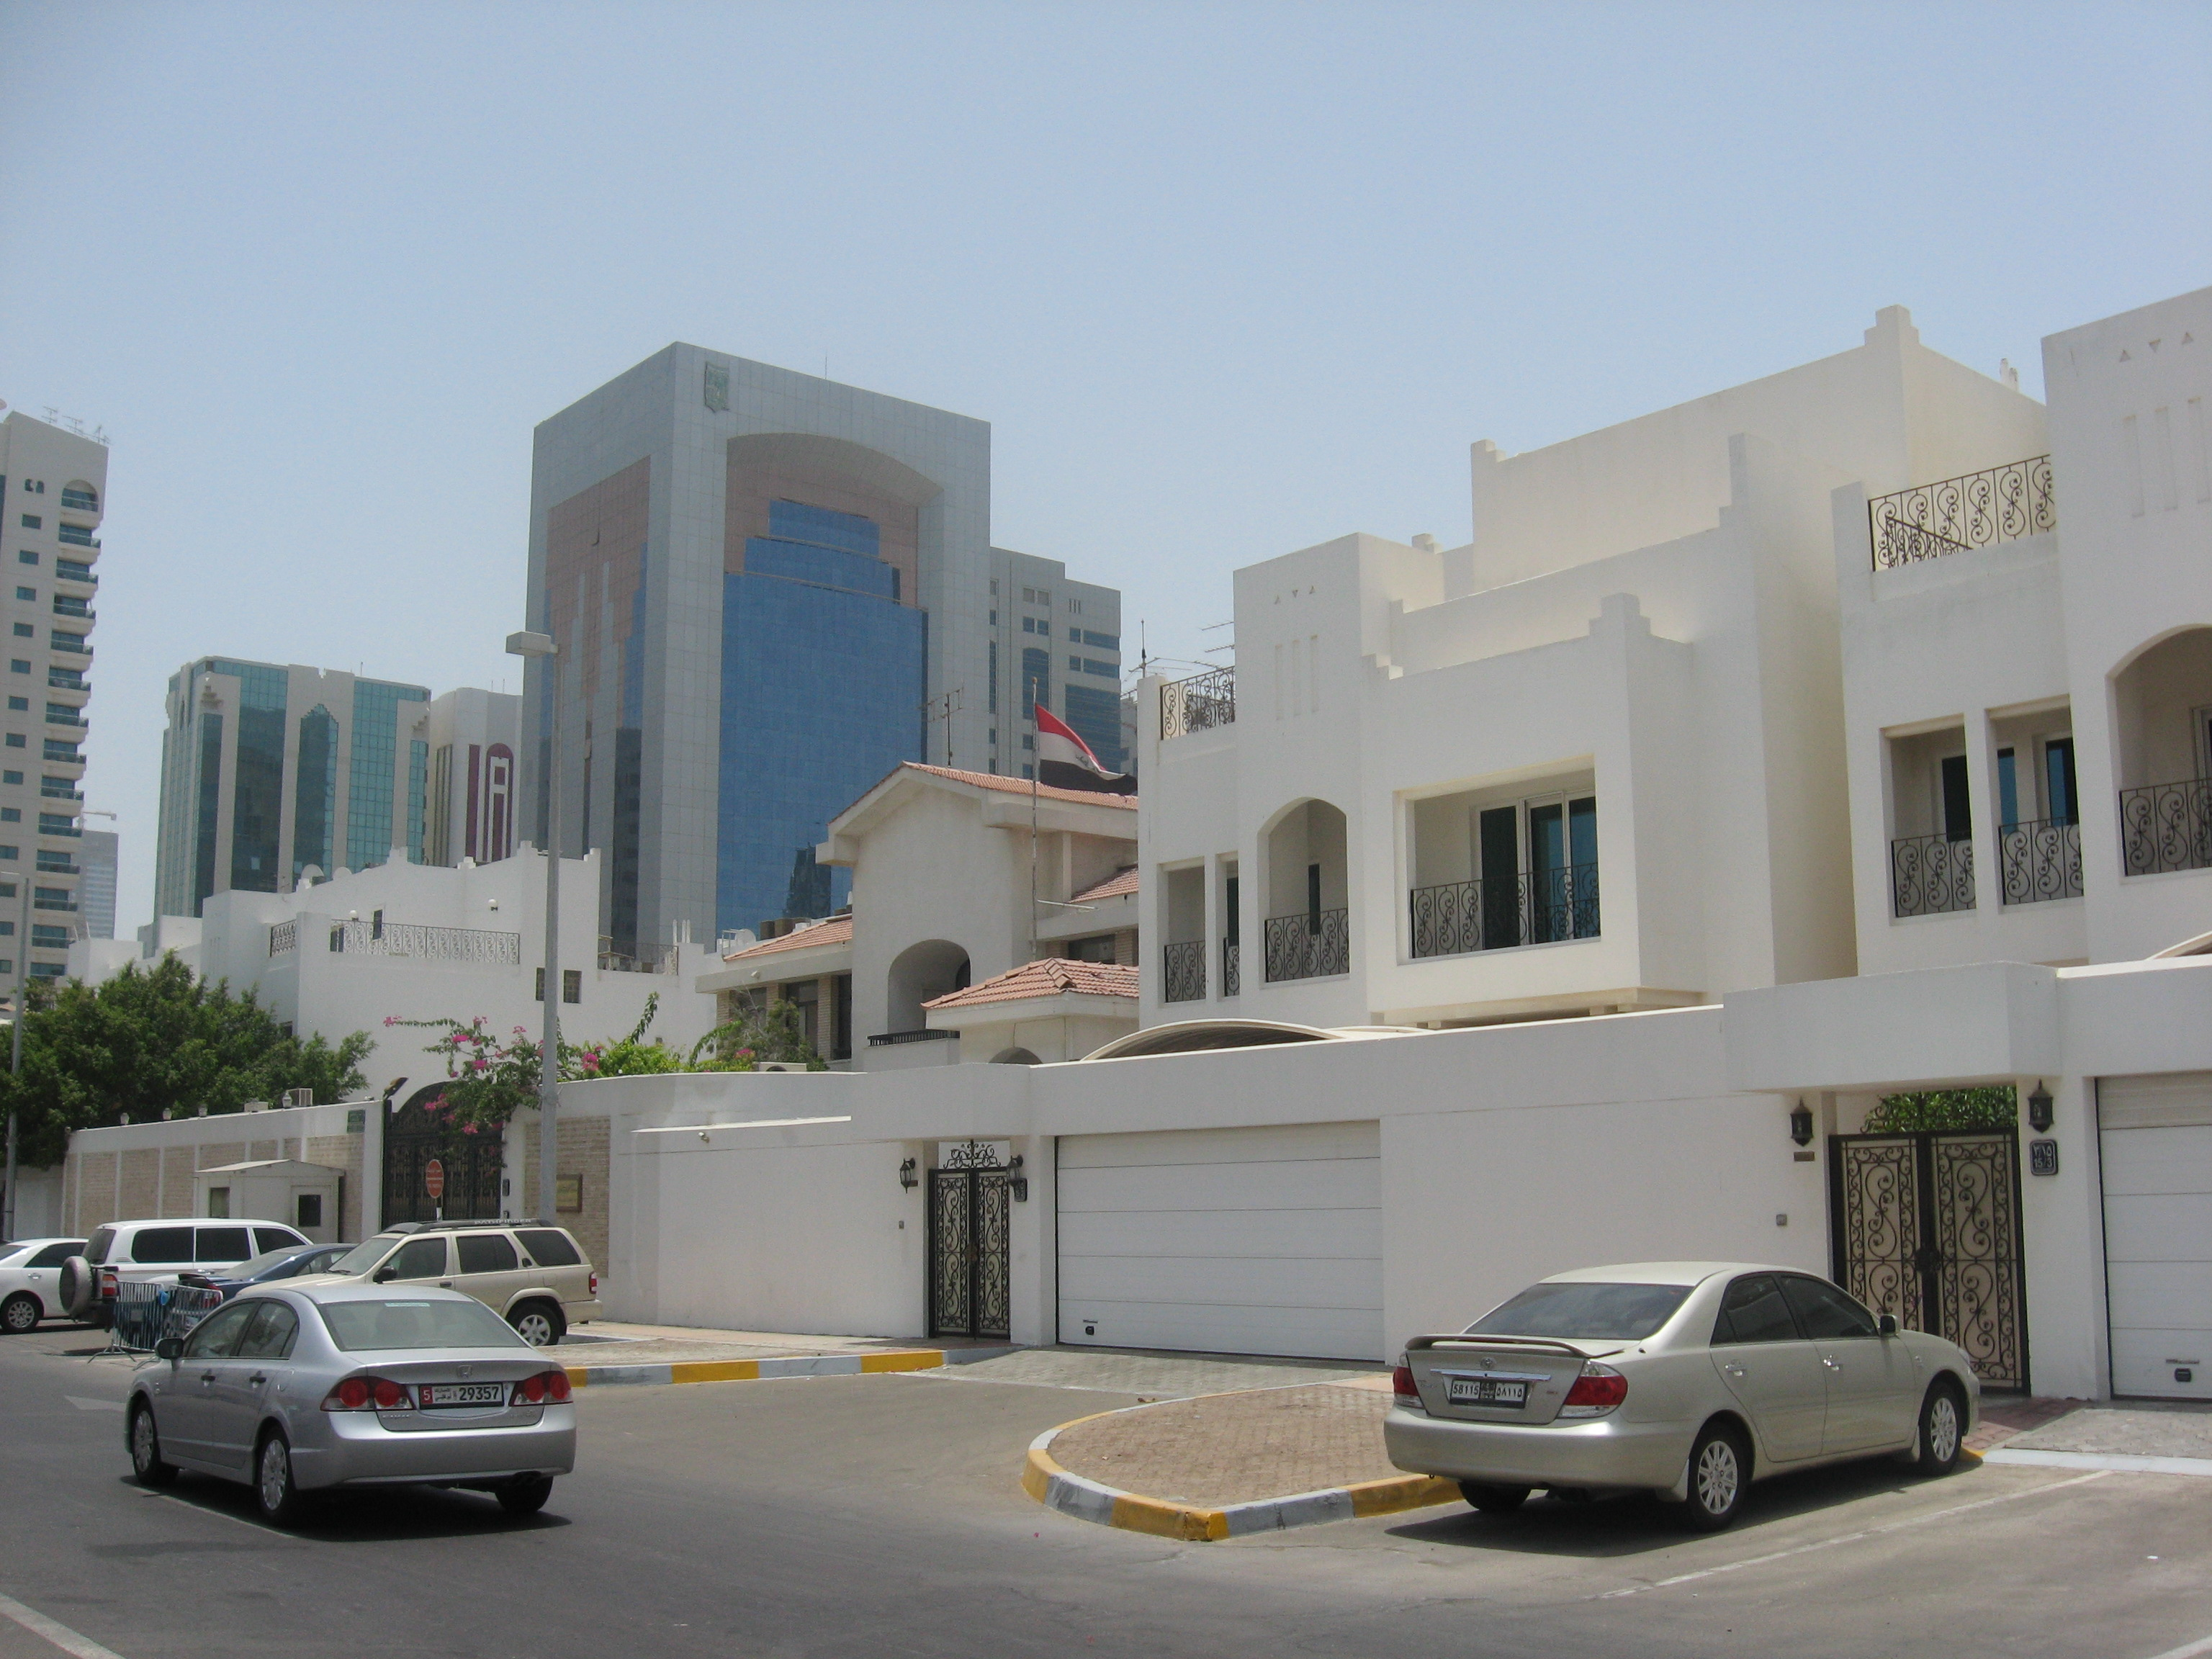 FileIraqi Embassy In Abu Dhabi JPG Wikimedia Commons - Us embassy abu dhabi location map